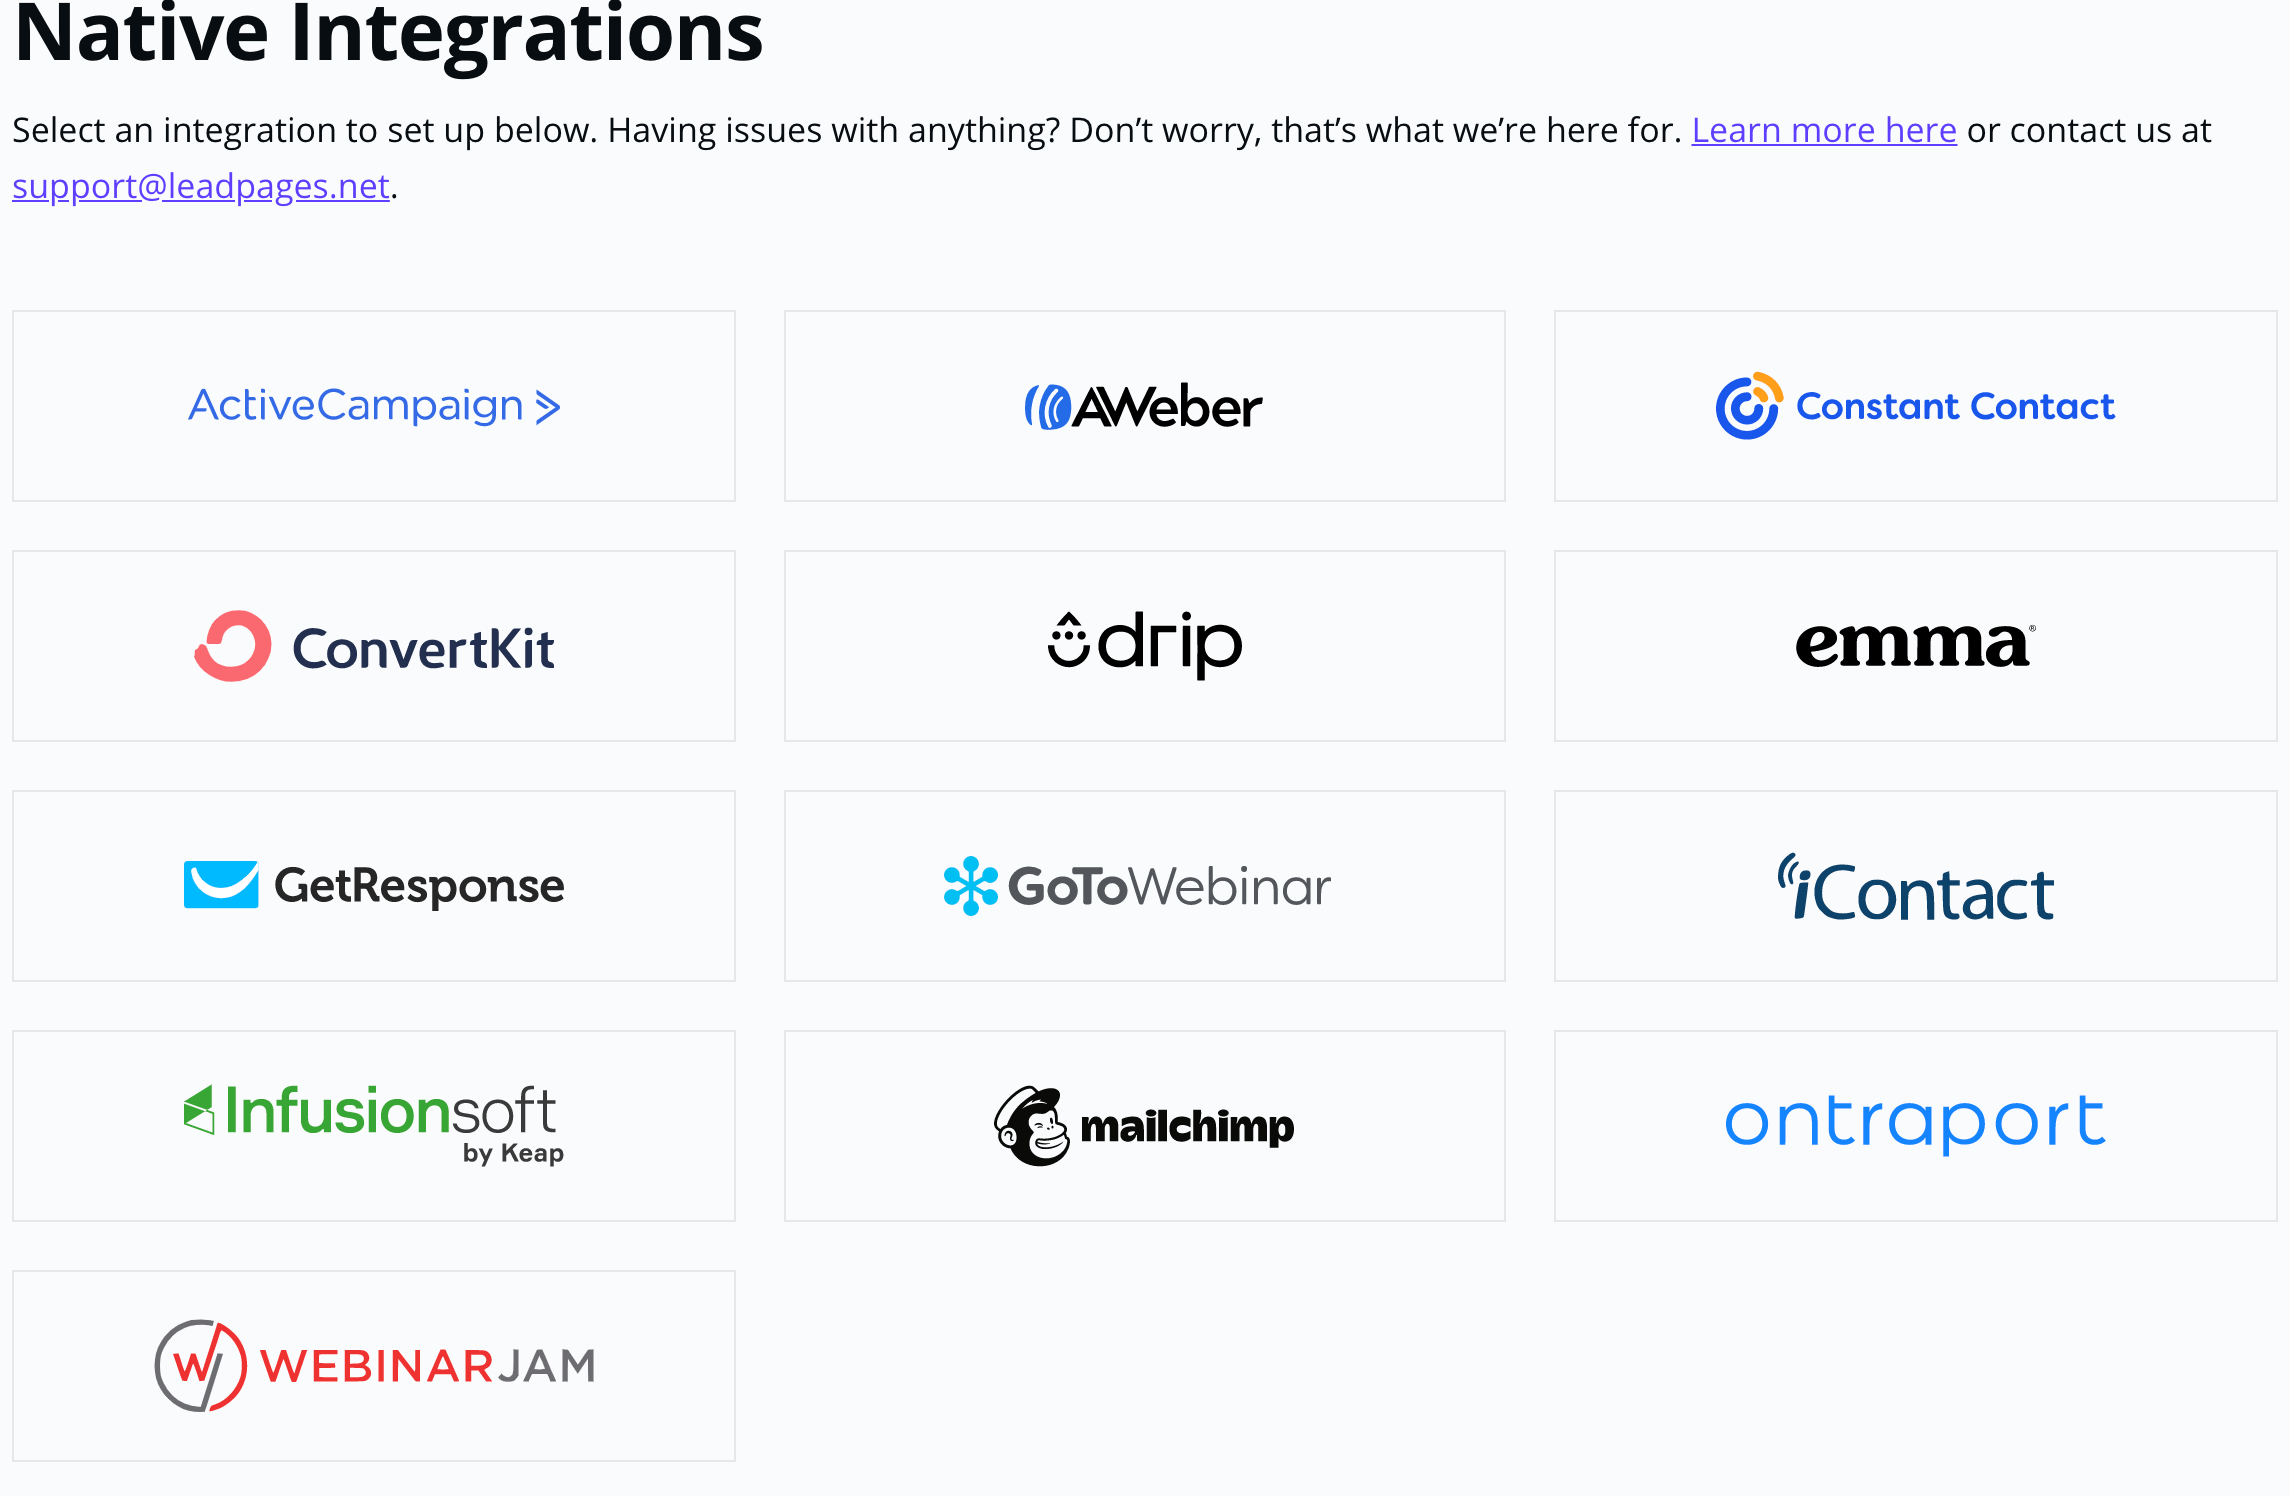 Lead pages Native Integrations